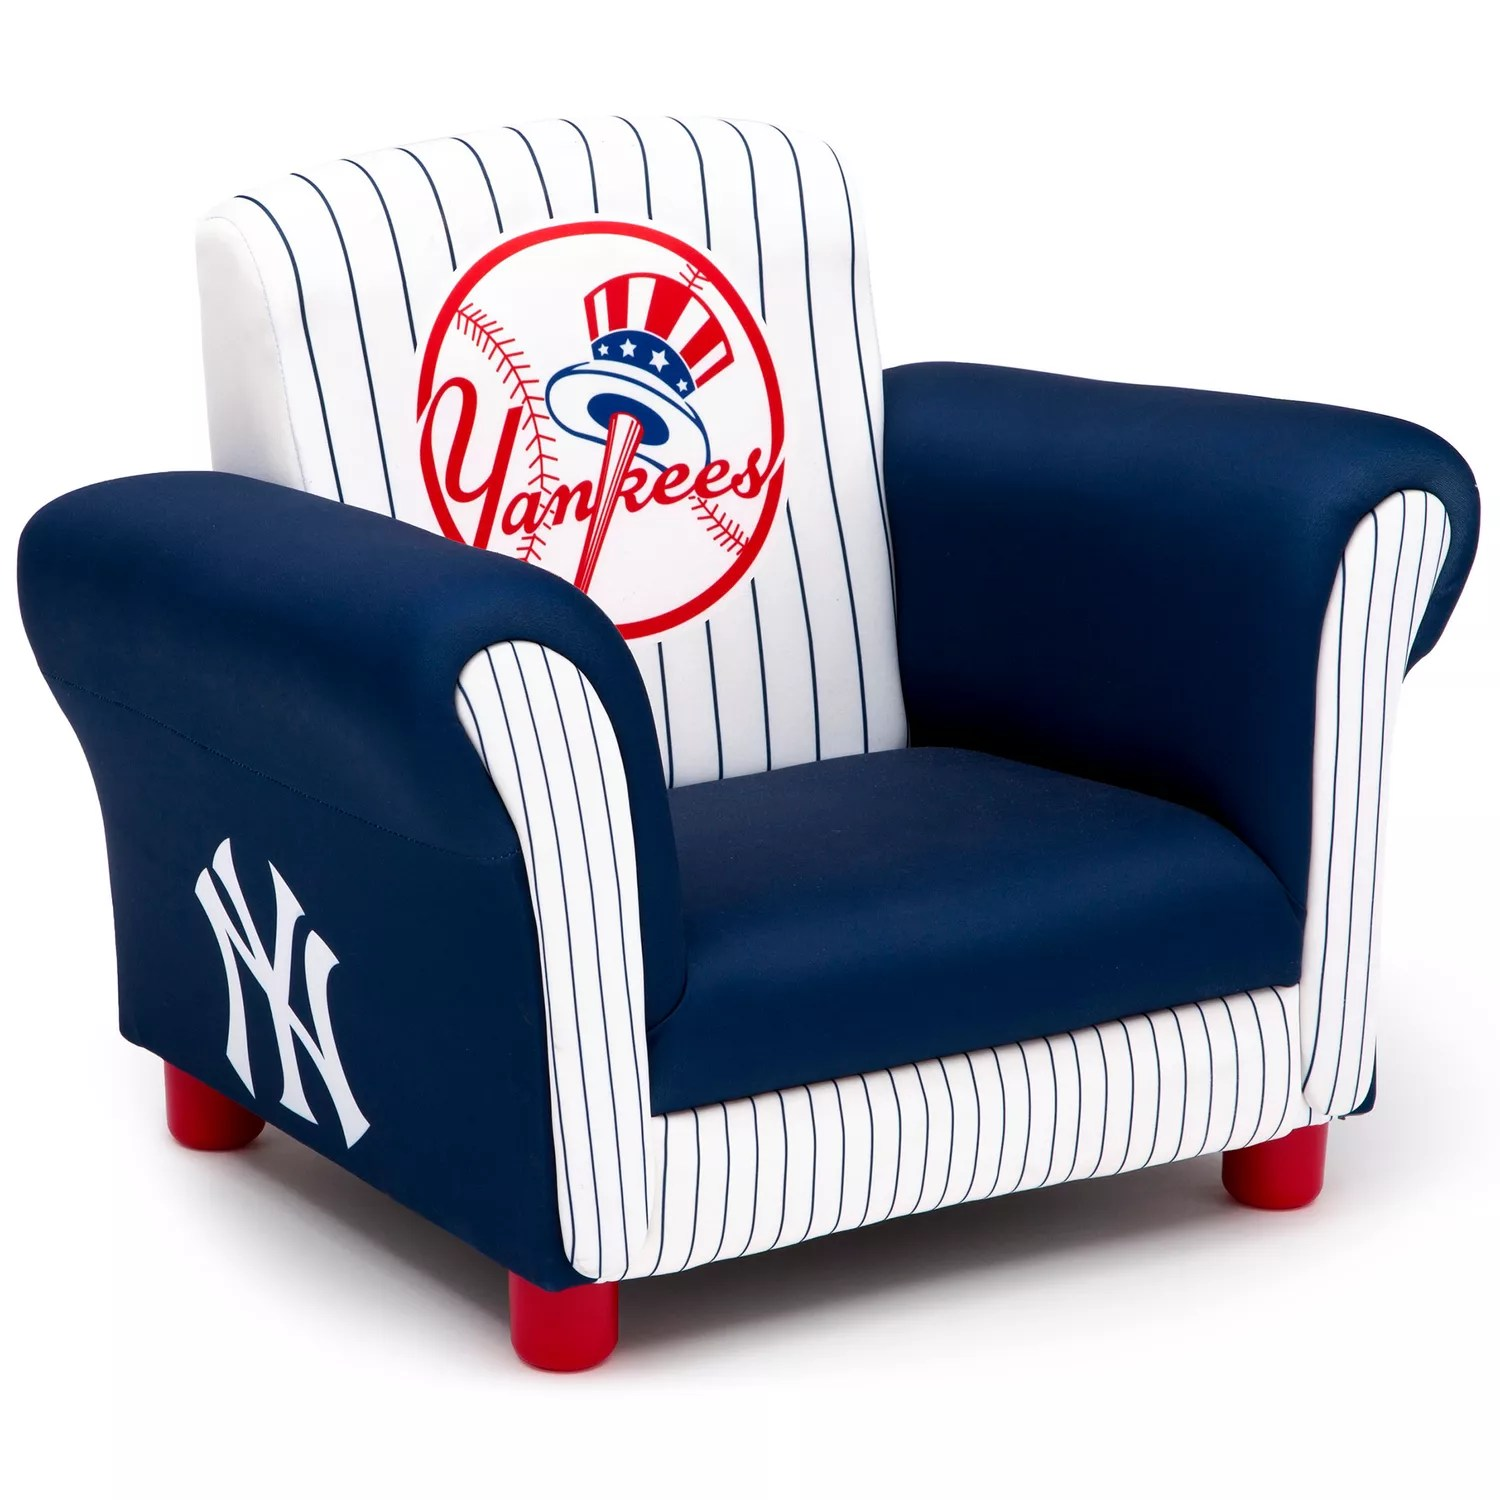 childrens upholstered chairs chair covers near me delta children new york yankees kids arm